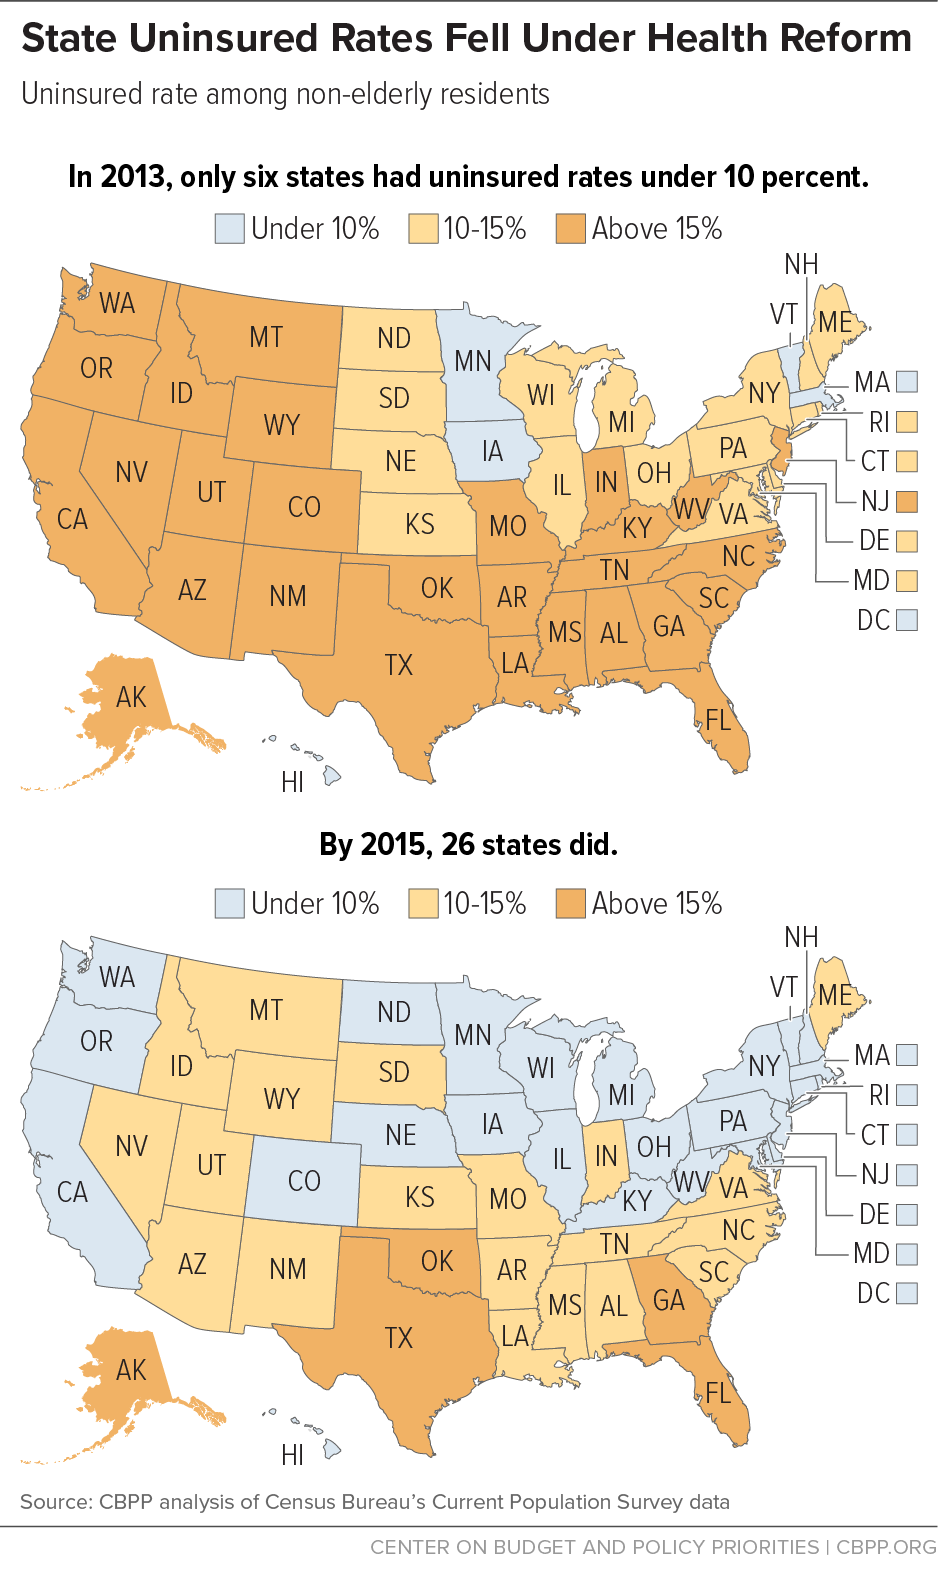 State Uninsured Rates Fell Under Health Reform